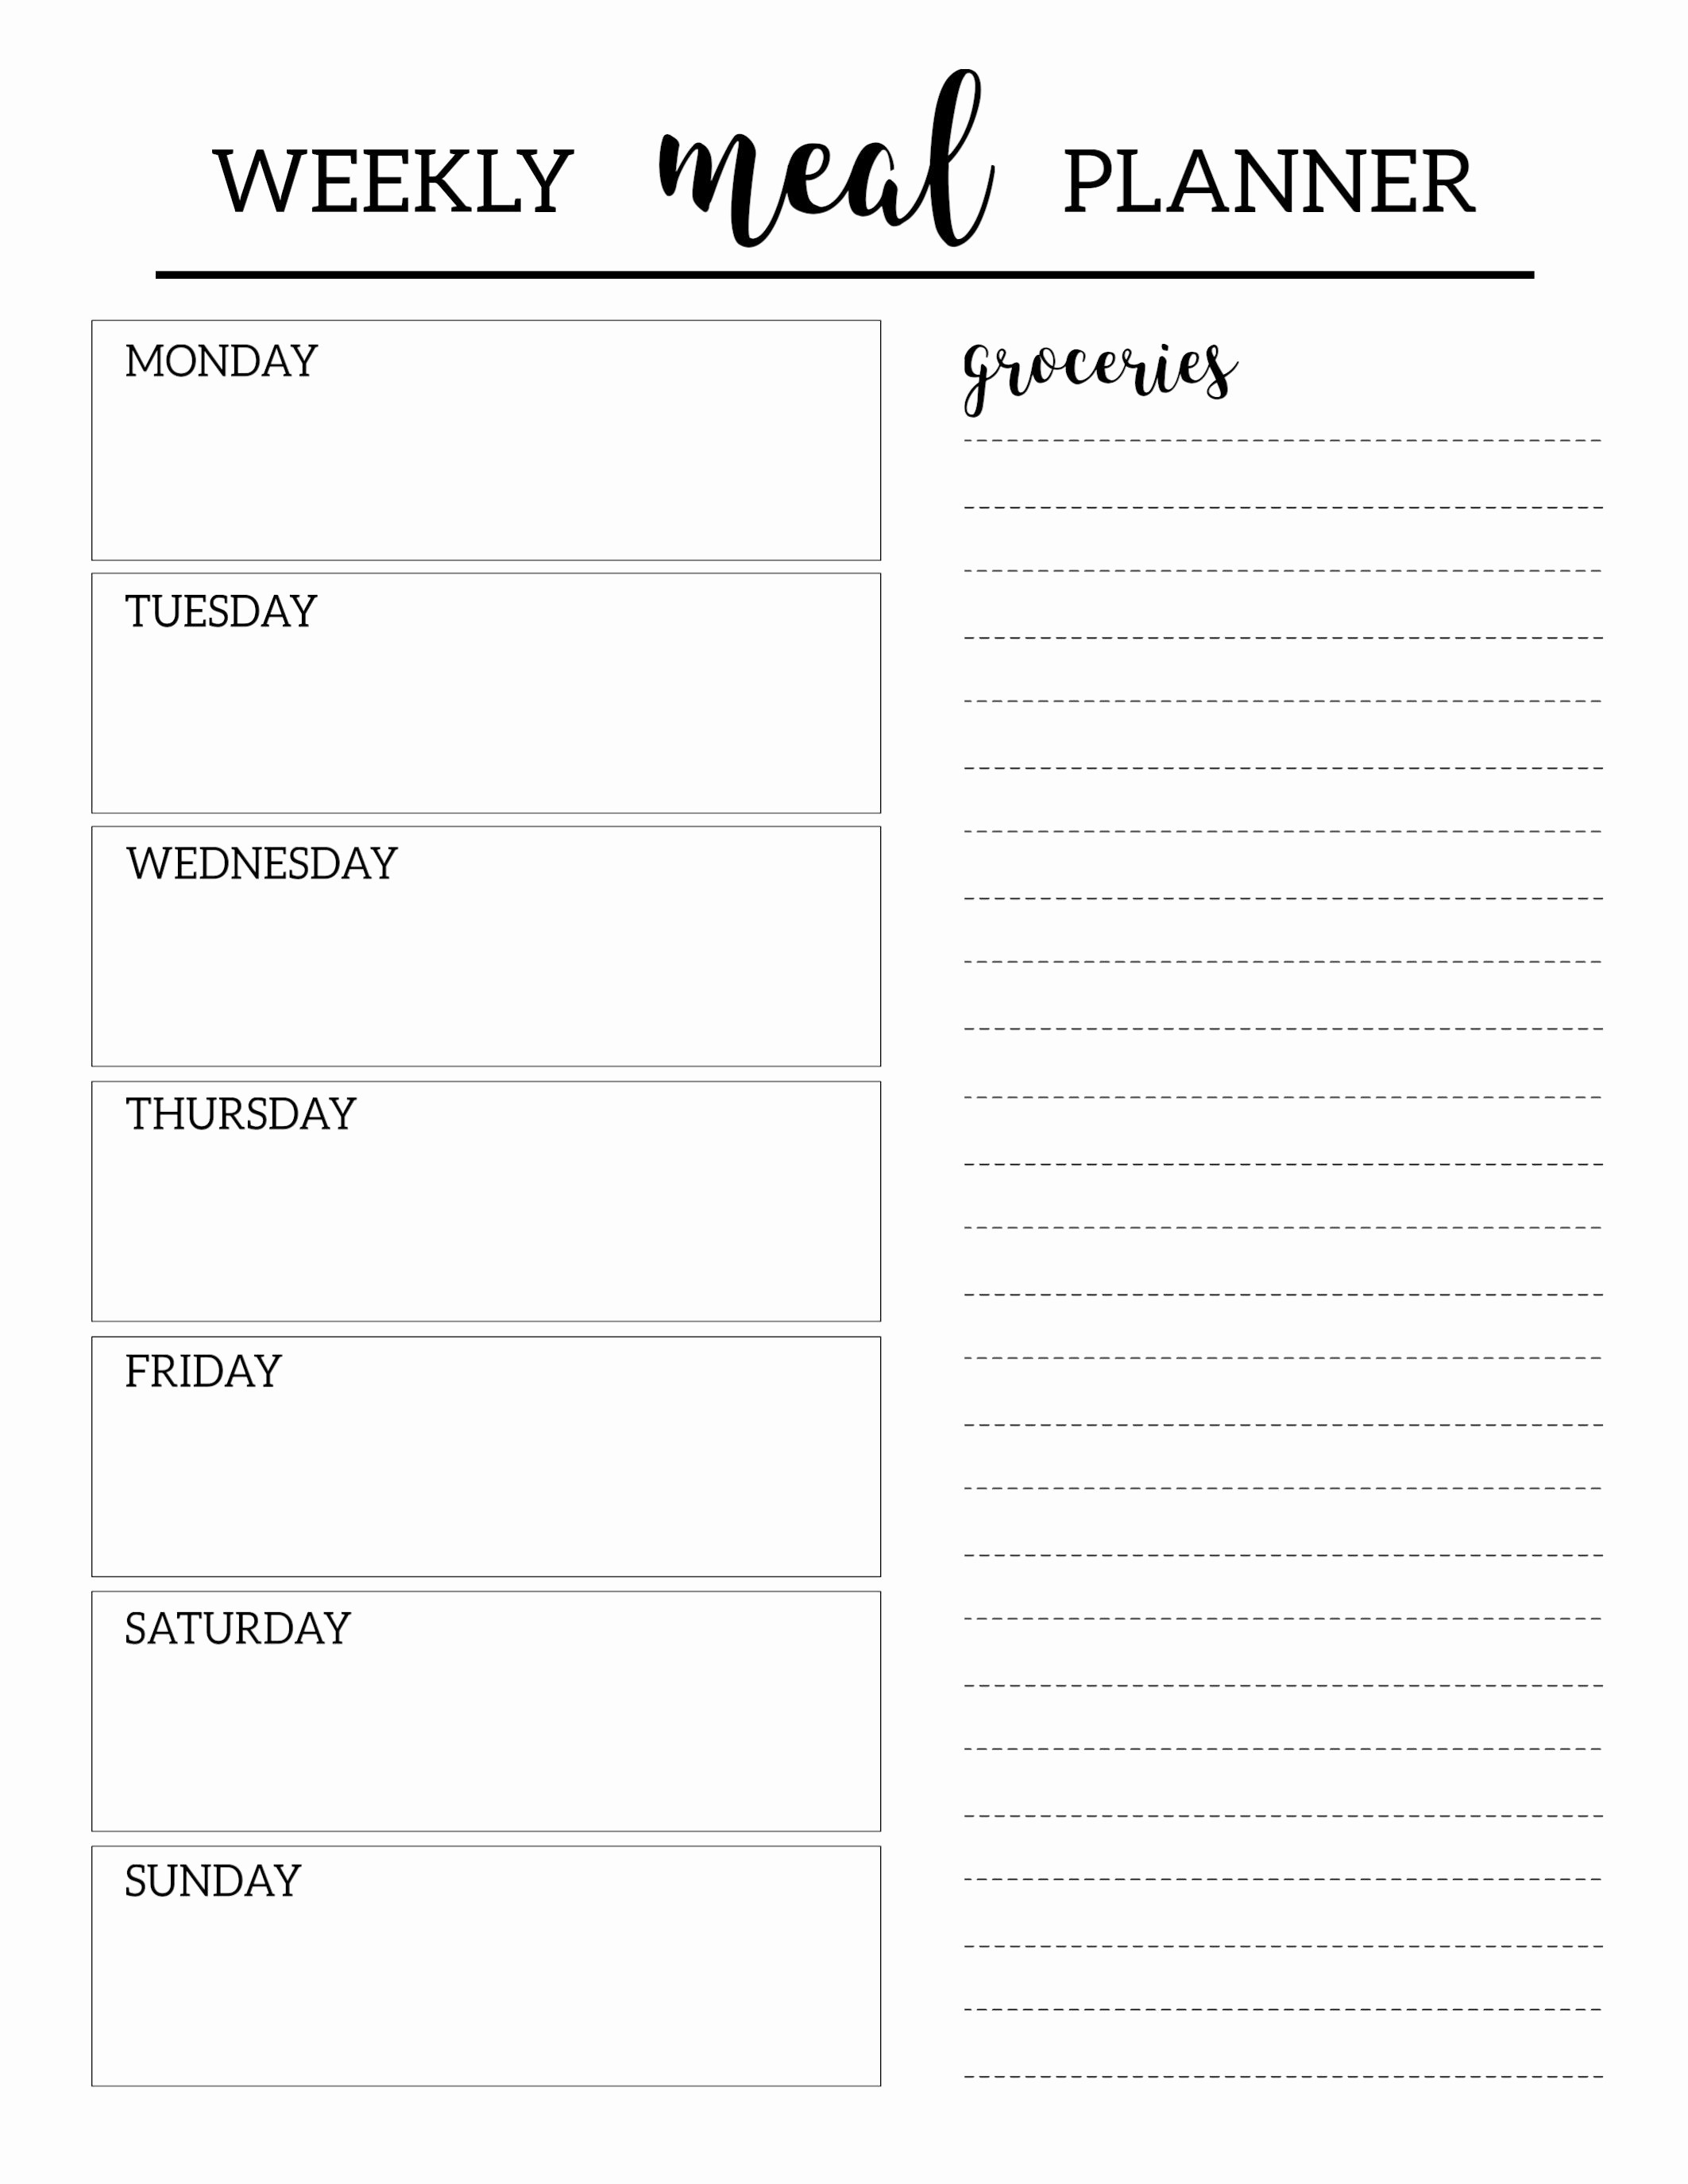 Weekly Meal Planner Templates Free Awesome Free Printable Meal Planner Template organization